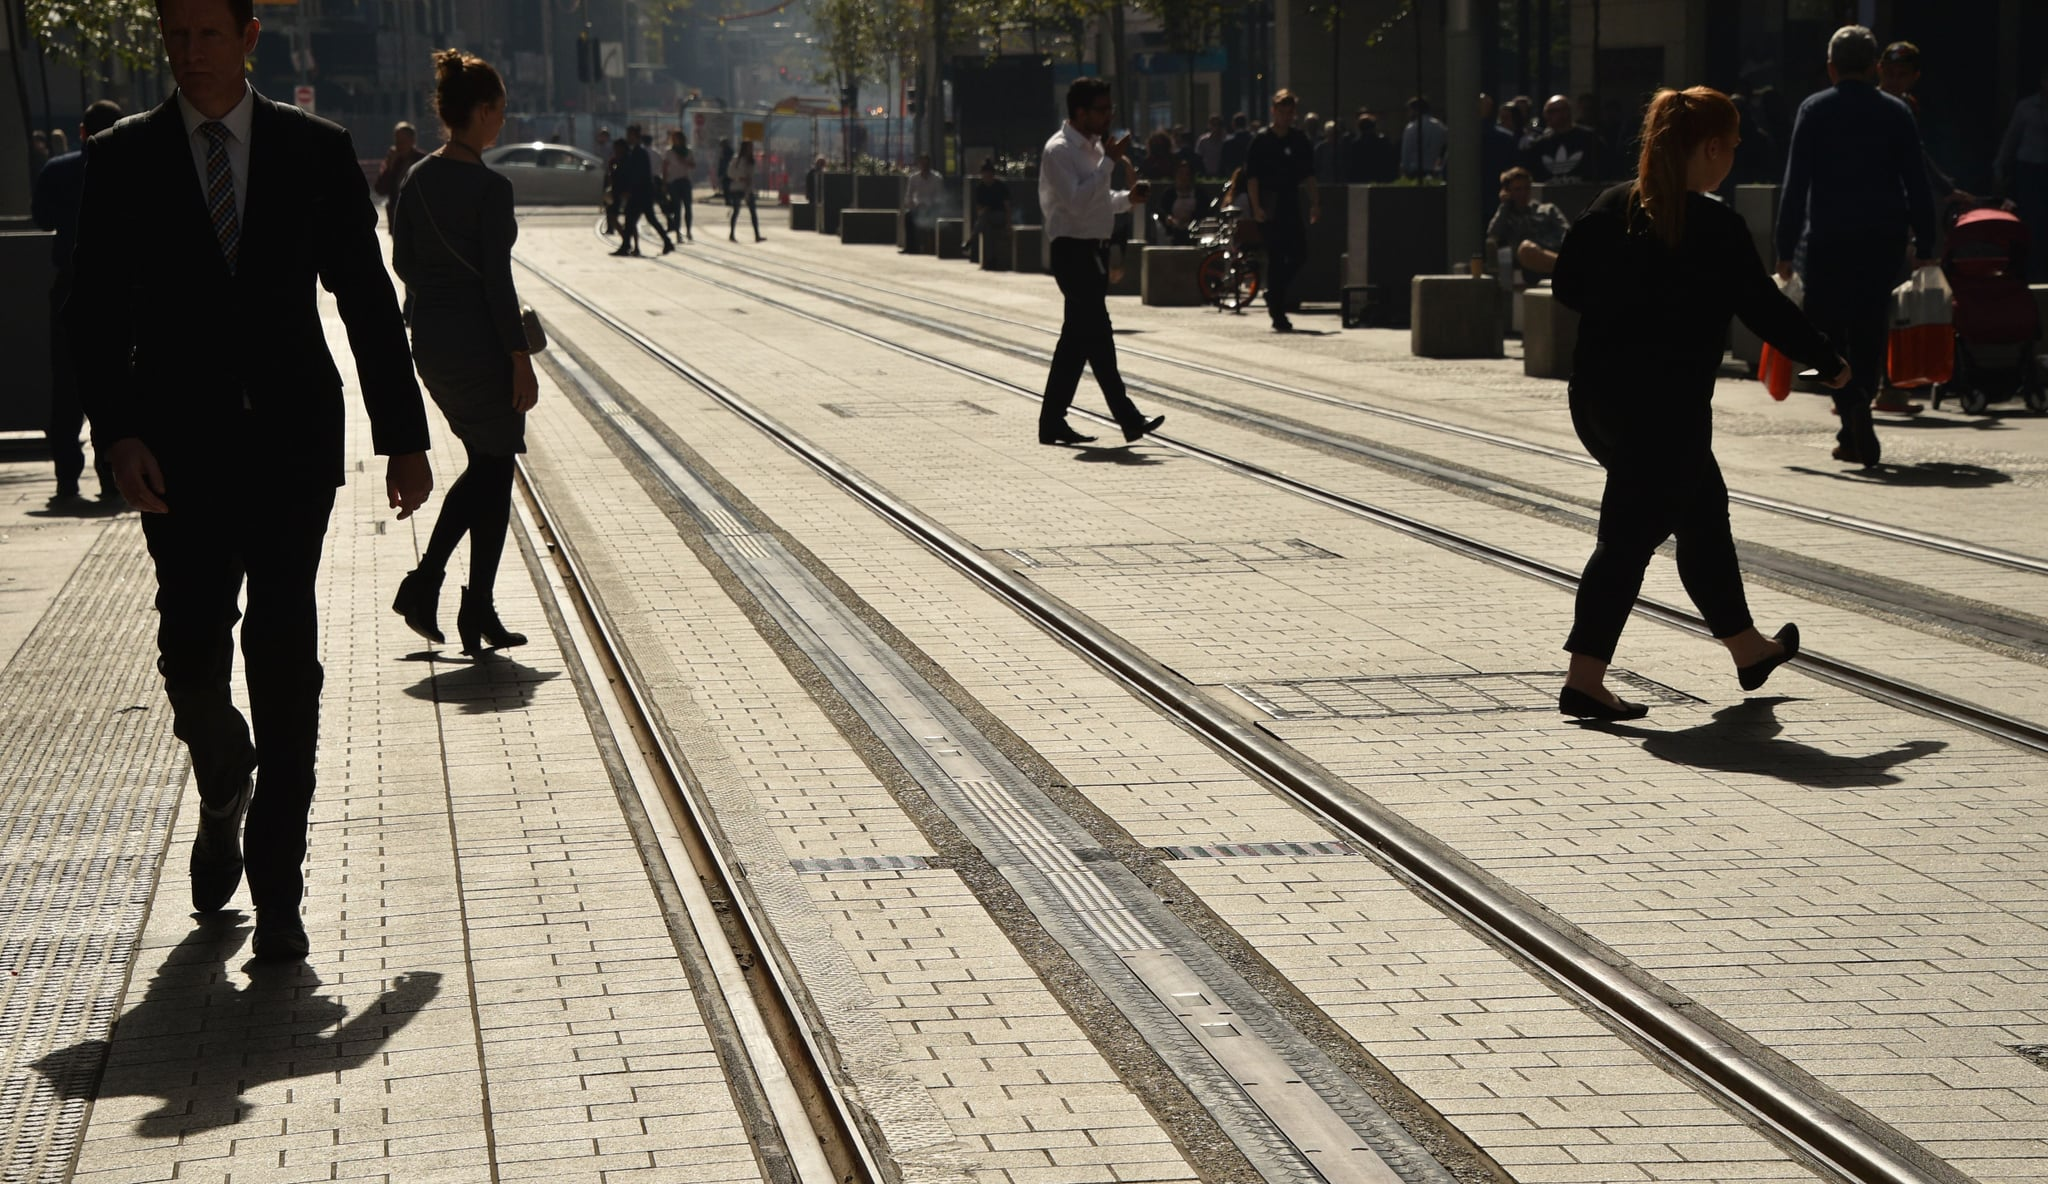 Pedestrians walk across the new light railway in the central business district of Sydney on May 8, 2018 as the Australian government prepares to release its 2018/19 budget later in the day. (Photo by PETER PARKS / AFP)        (Photo credit should read PETER PARKS/AFP/Getty Images)